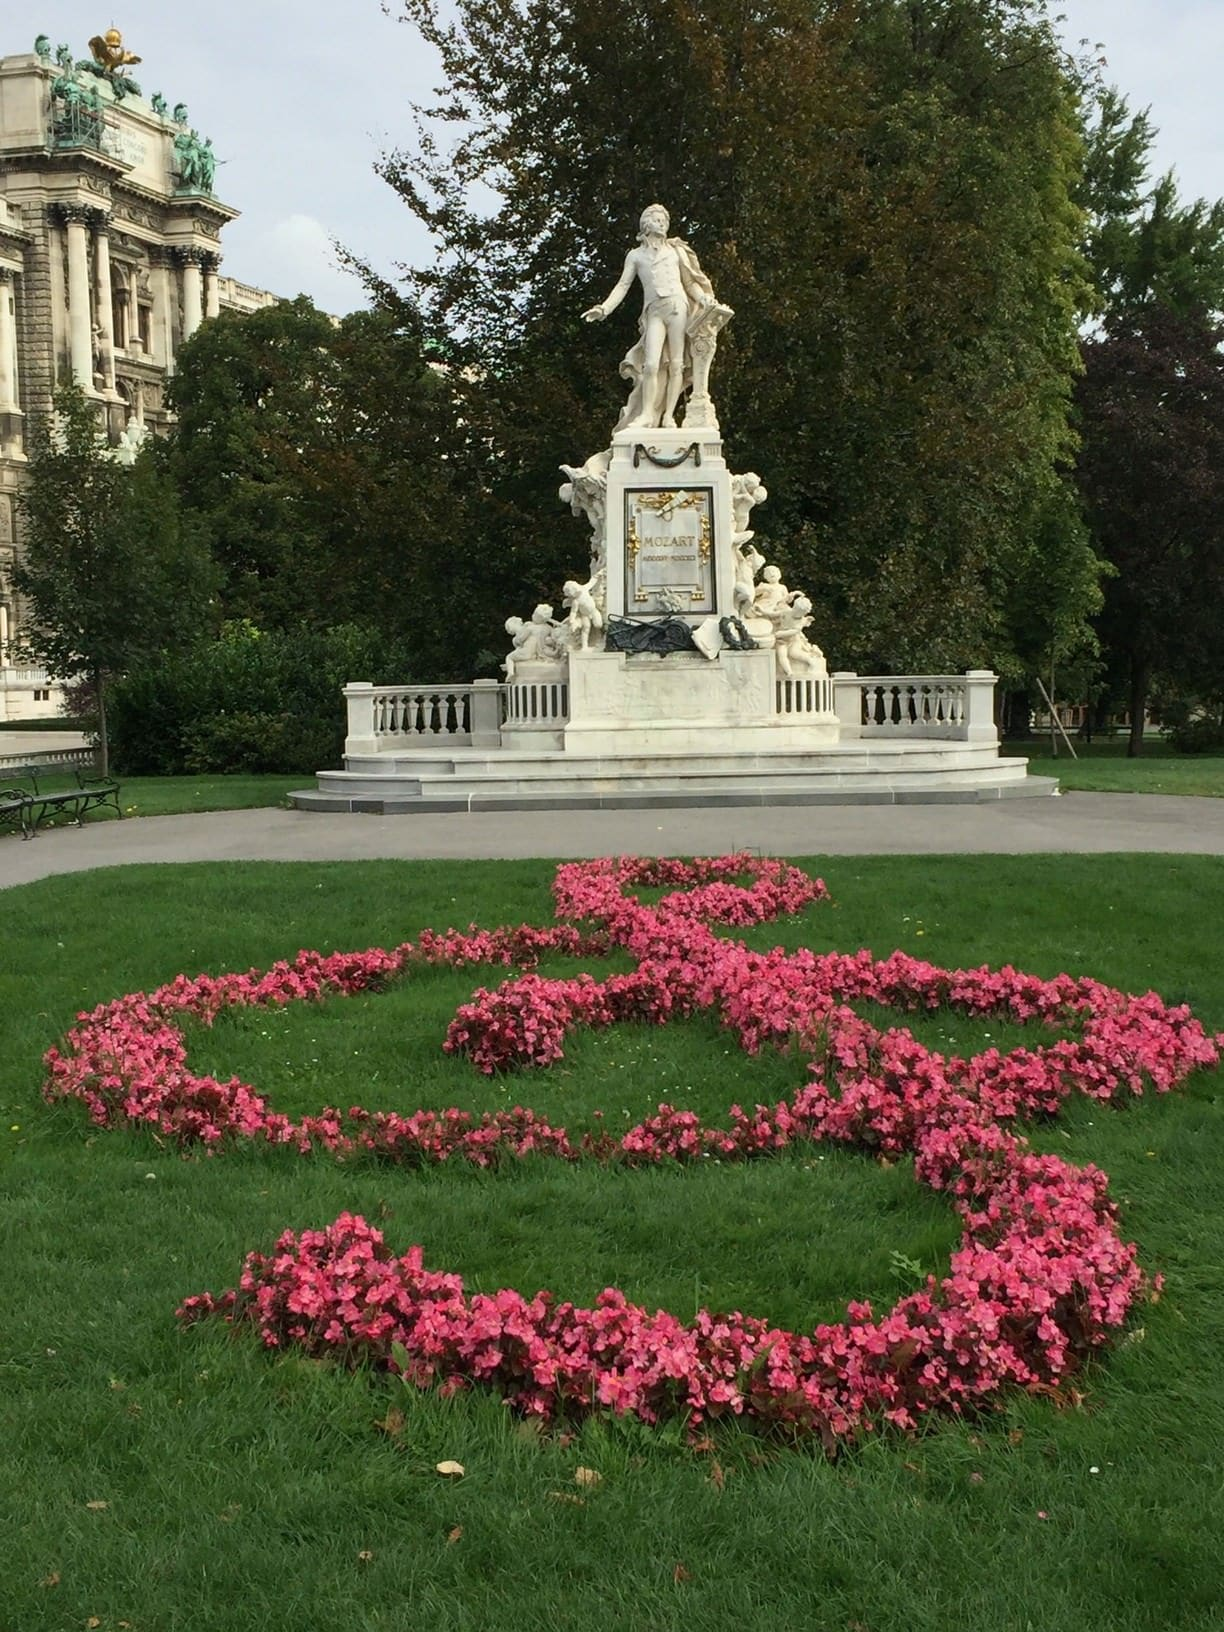 Tourist Attractions in Vienna 7